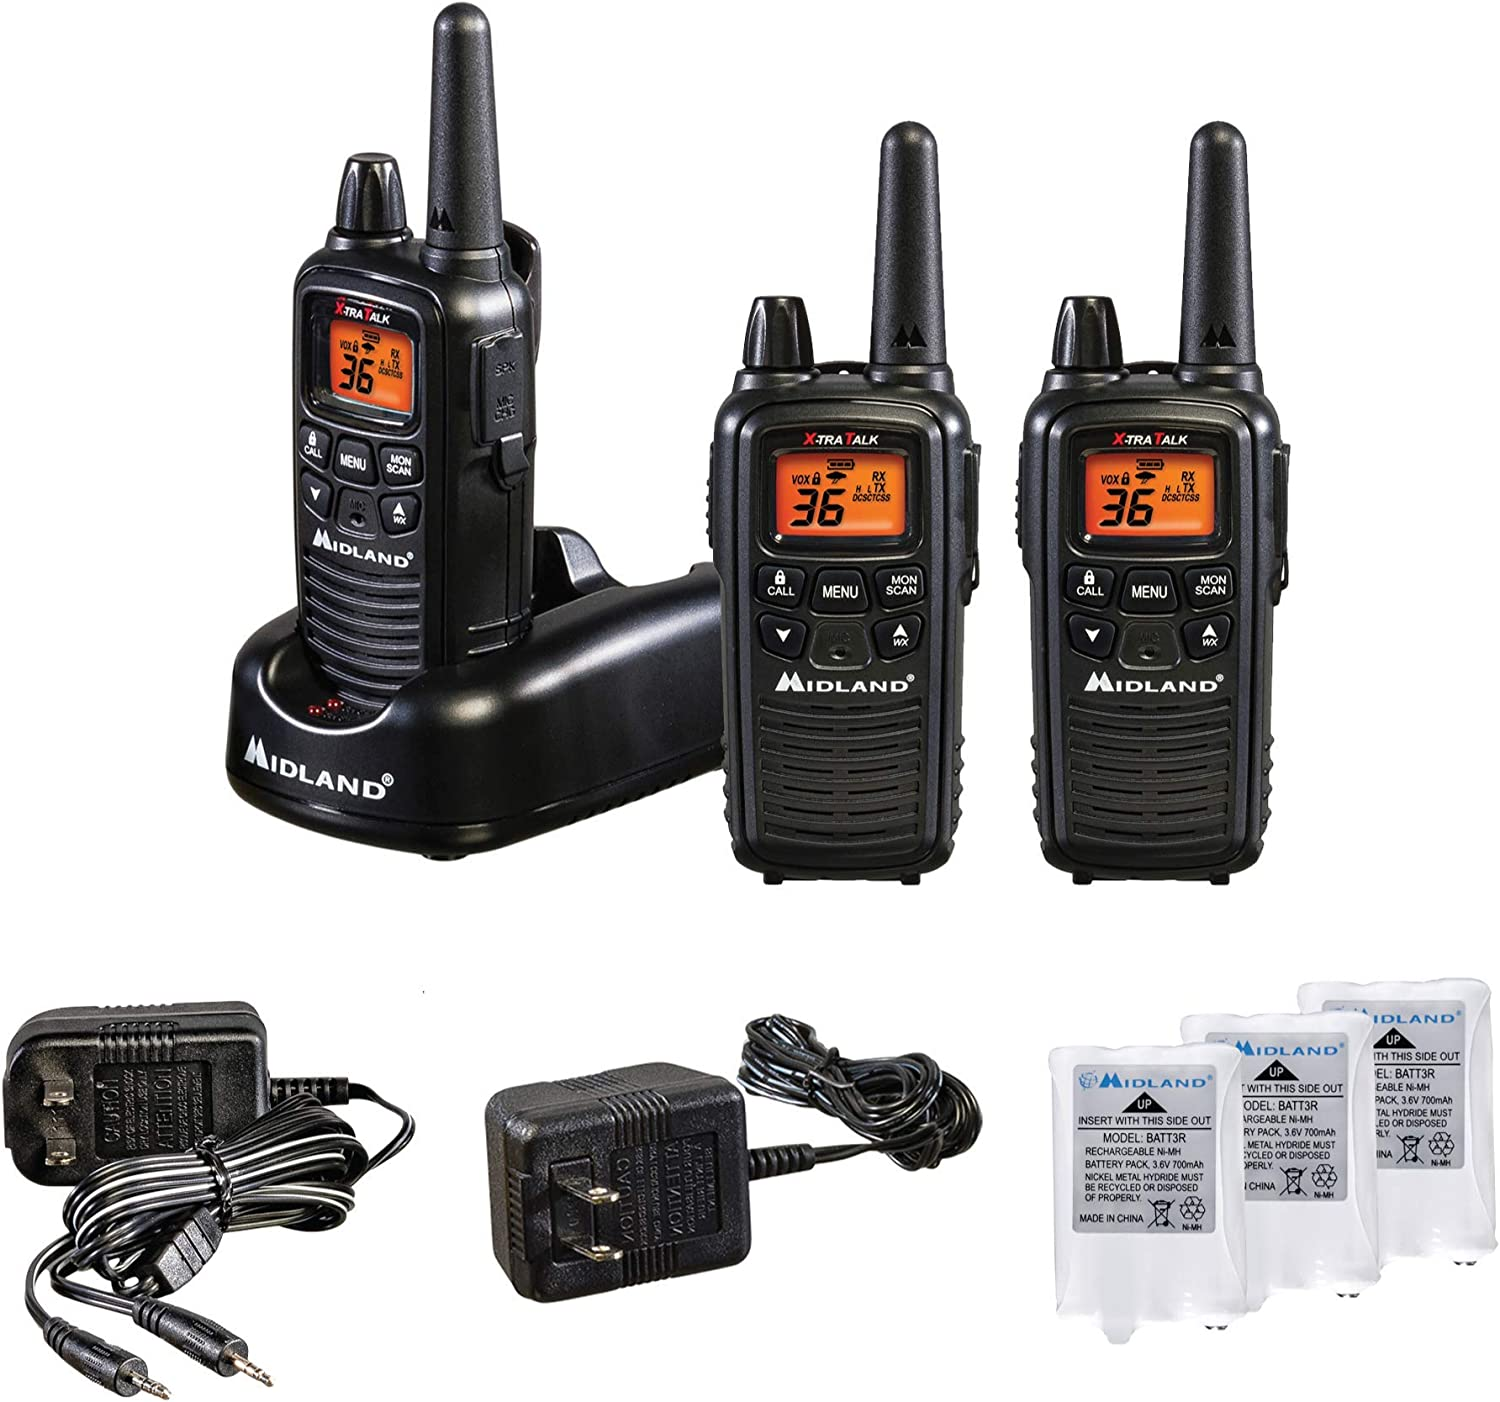 Midland - LXT633VP3, 36 Channel FRS Two-Way Radio - Up to 30 Mile Range Walkie Talkie, 121 Privacy Codes, & NOAA Weather Scan + Alert (3 Pack) (Black)